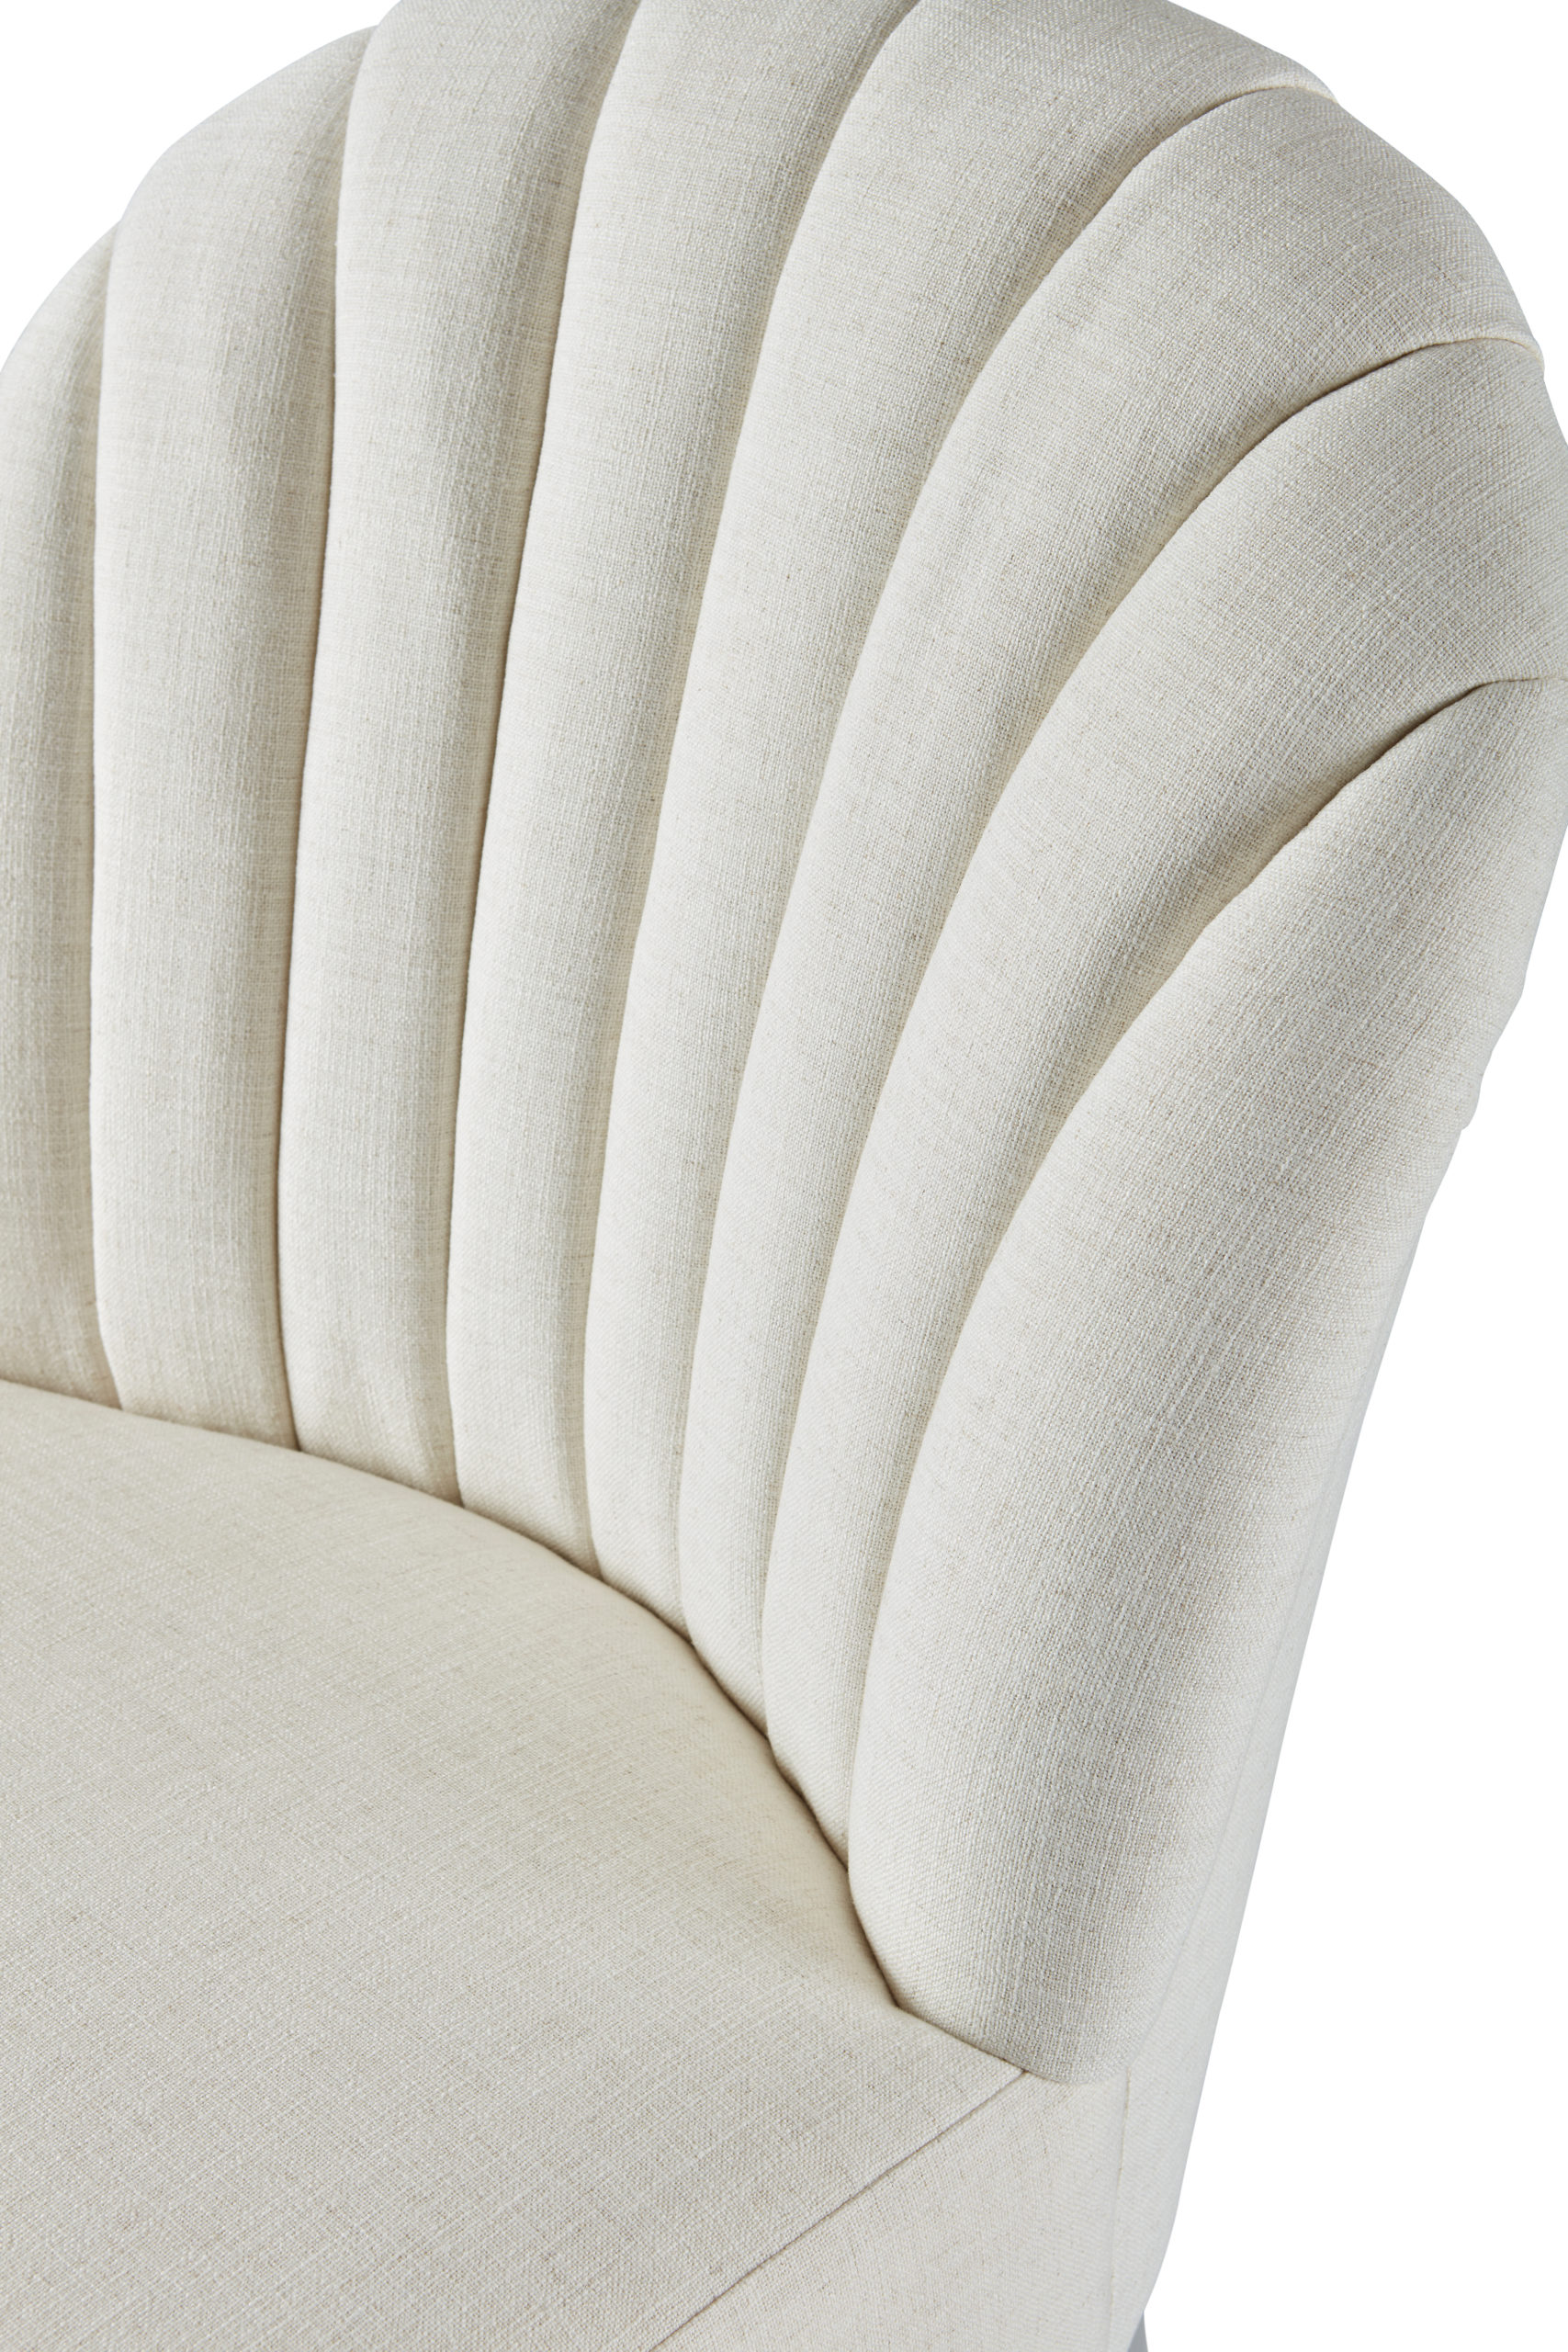 Baker_products_WNWN_lola_chair_BAU3310c_DETAIL-scaled-1